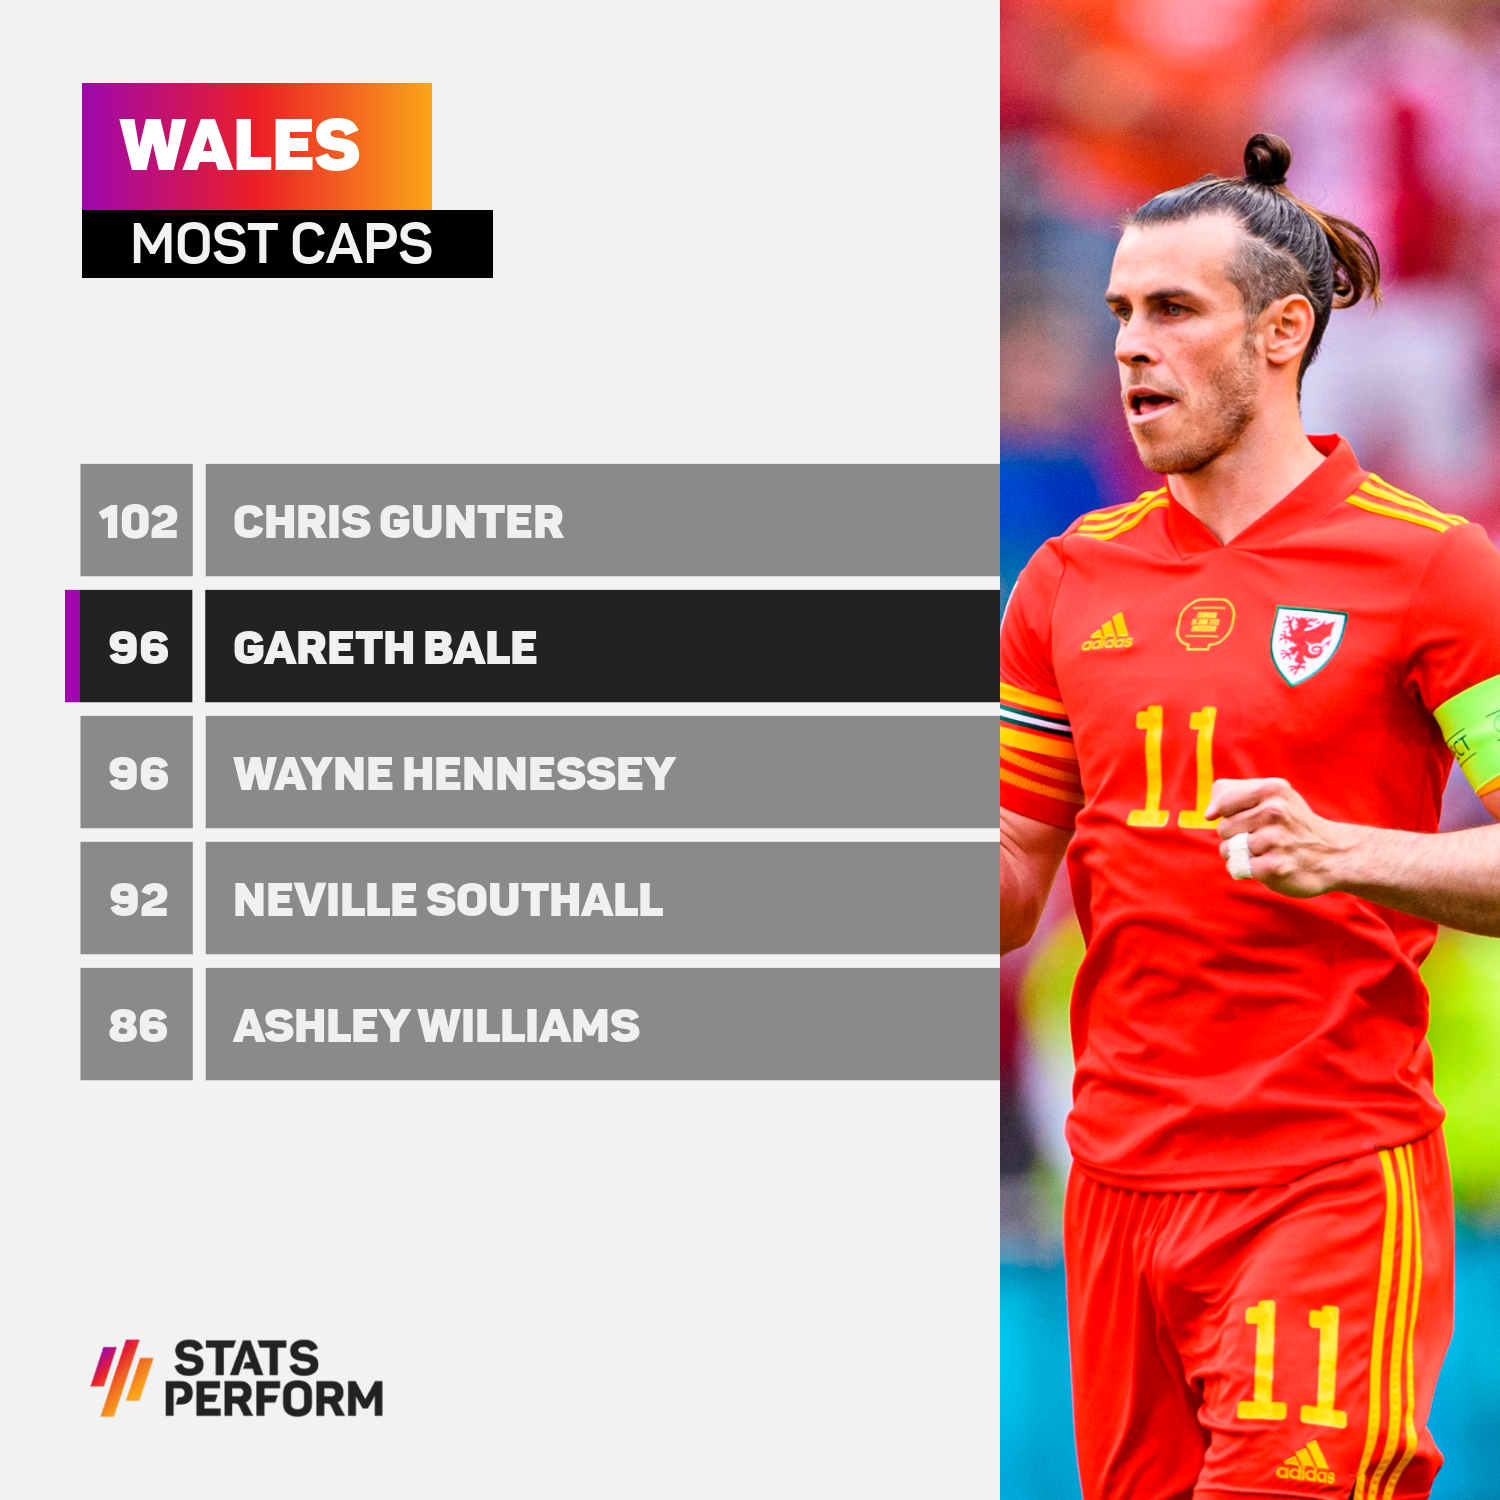 Wales most capped players